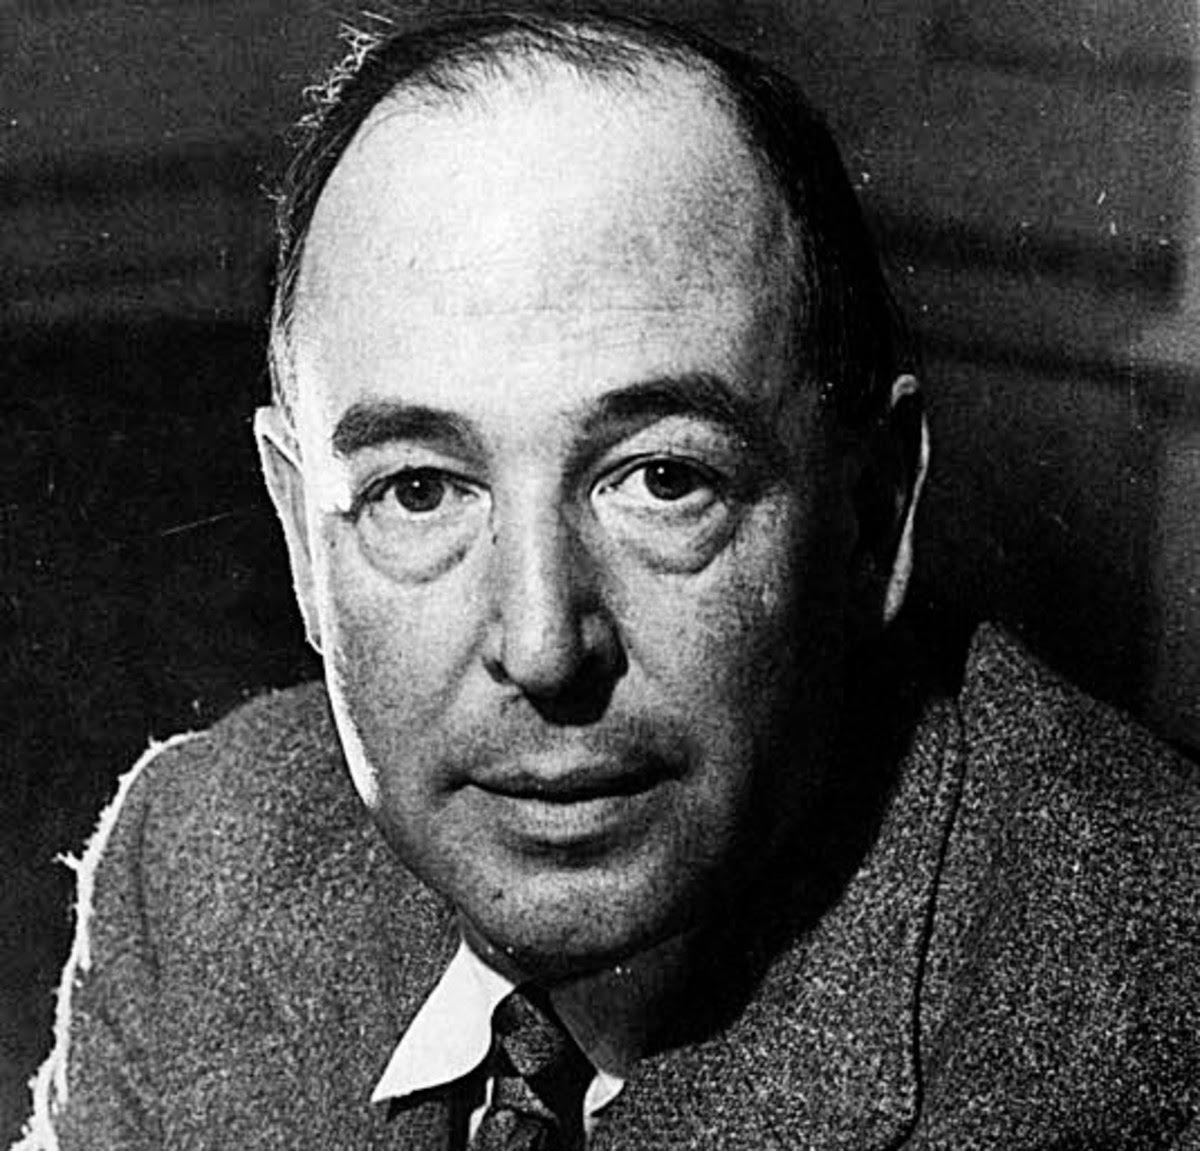 cs lewis But jack, as cs lewis's friends knew him, was not bothered by fashion he  was meticulous about the precise use of words, the quality of evidence presented .